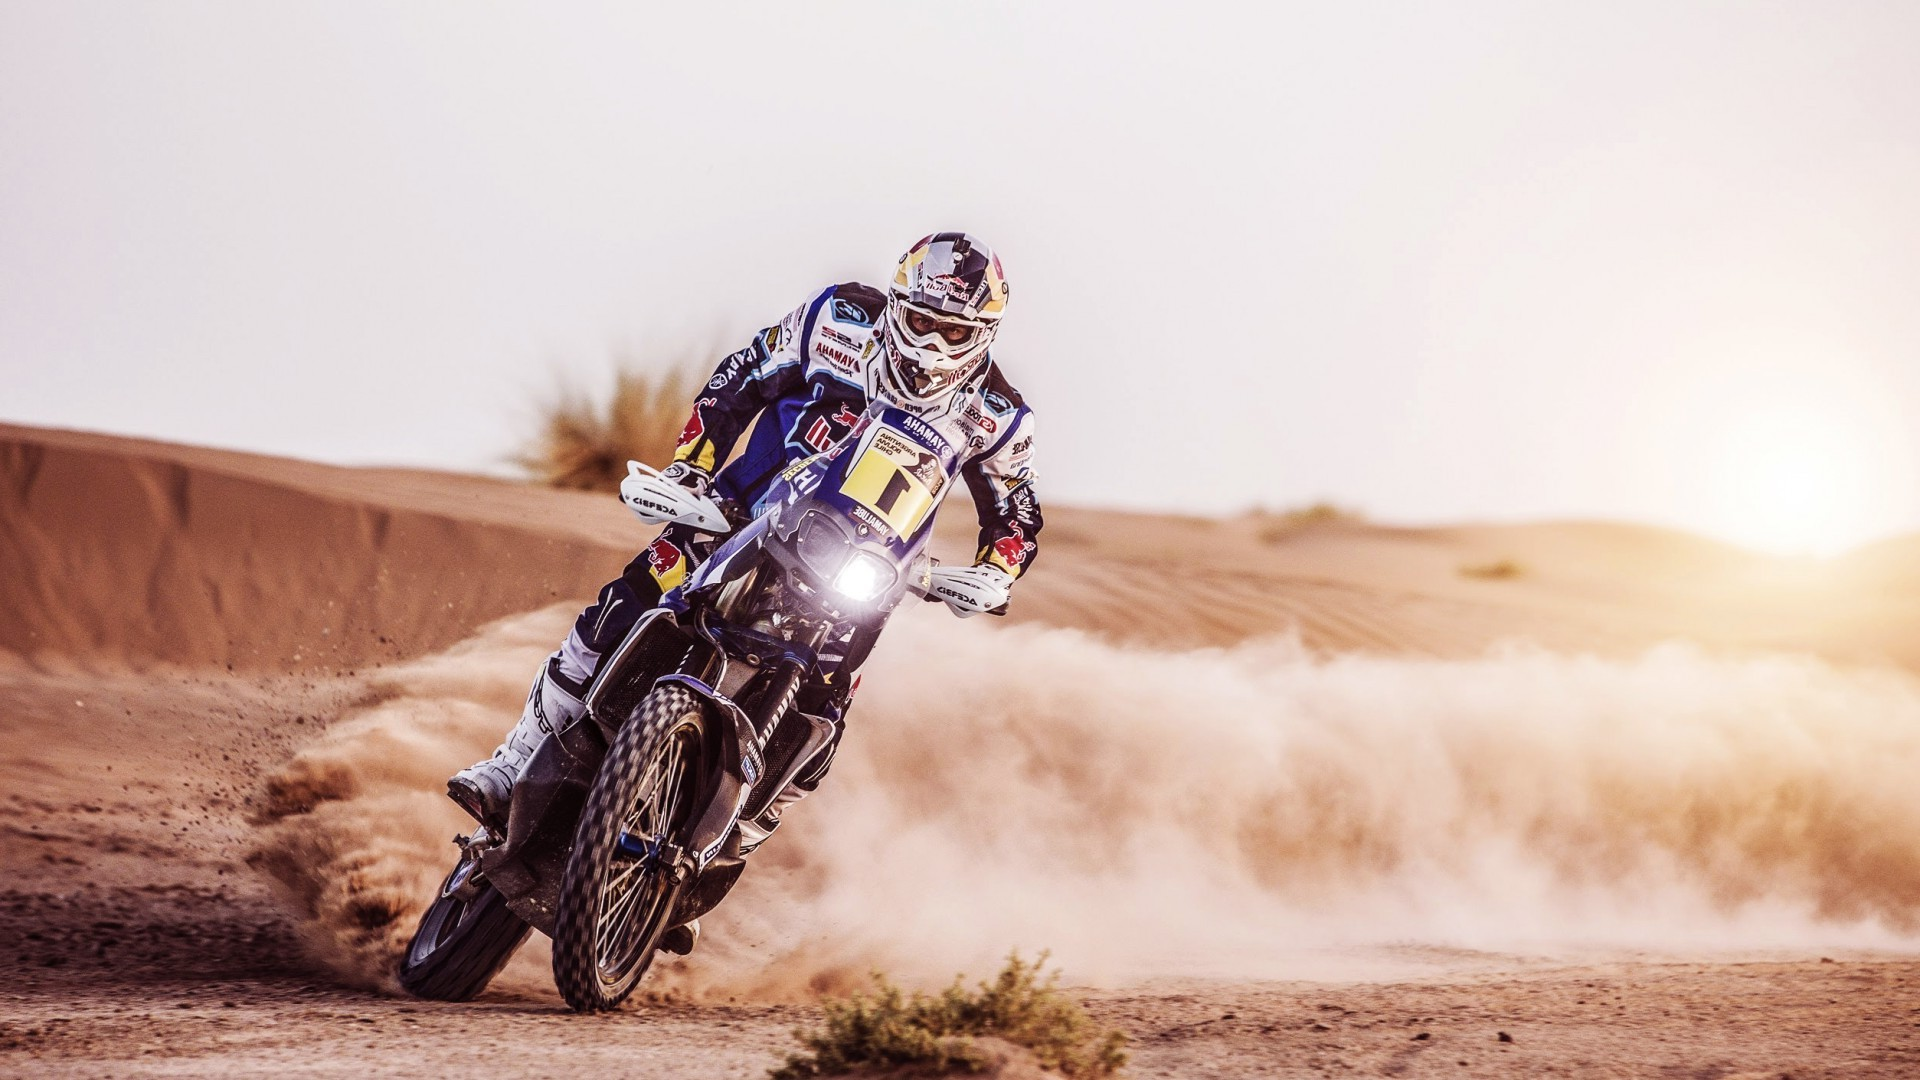 Dirt Bike Wallpaper Girls Motocross Desert Landscape Dakar Wallpapers Hd